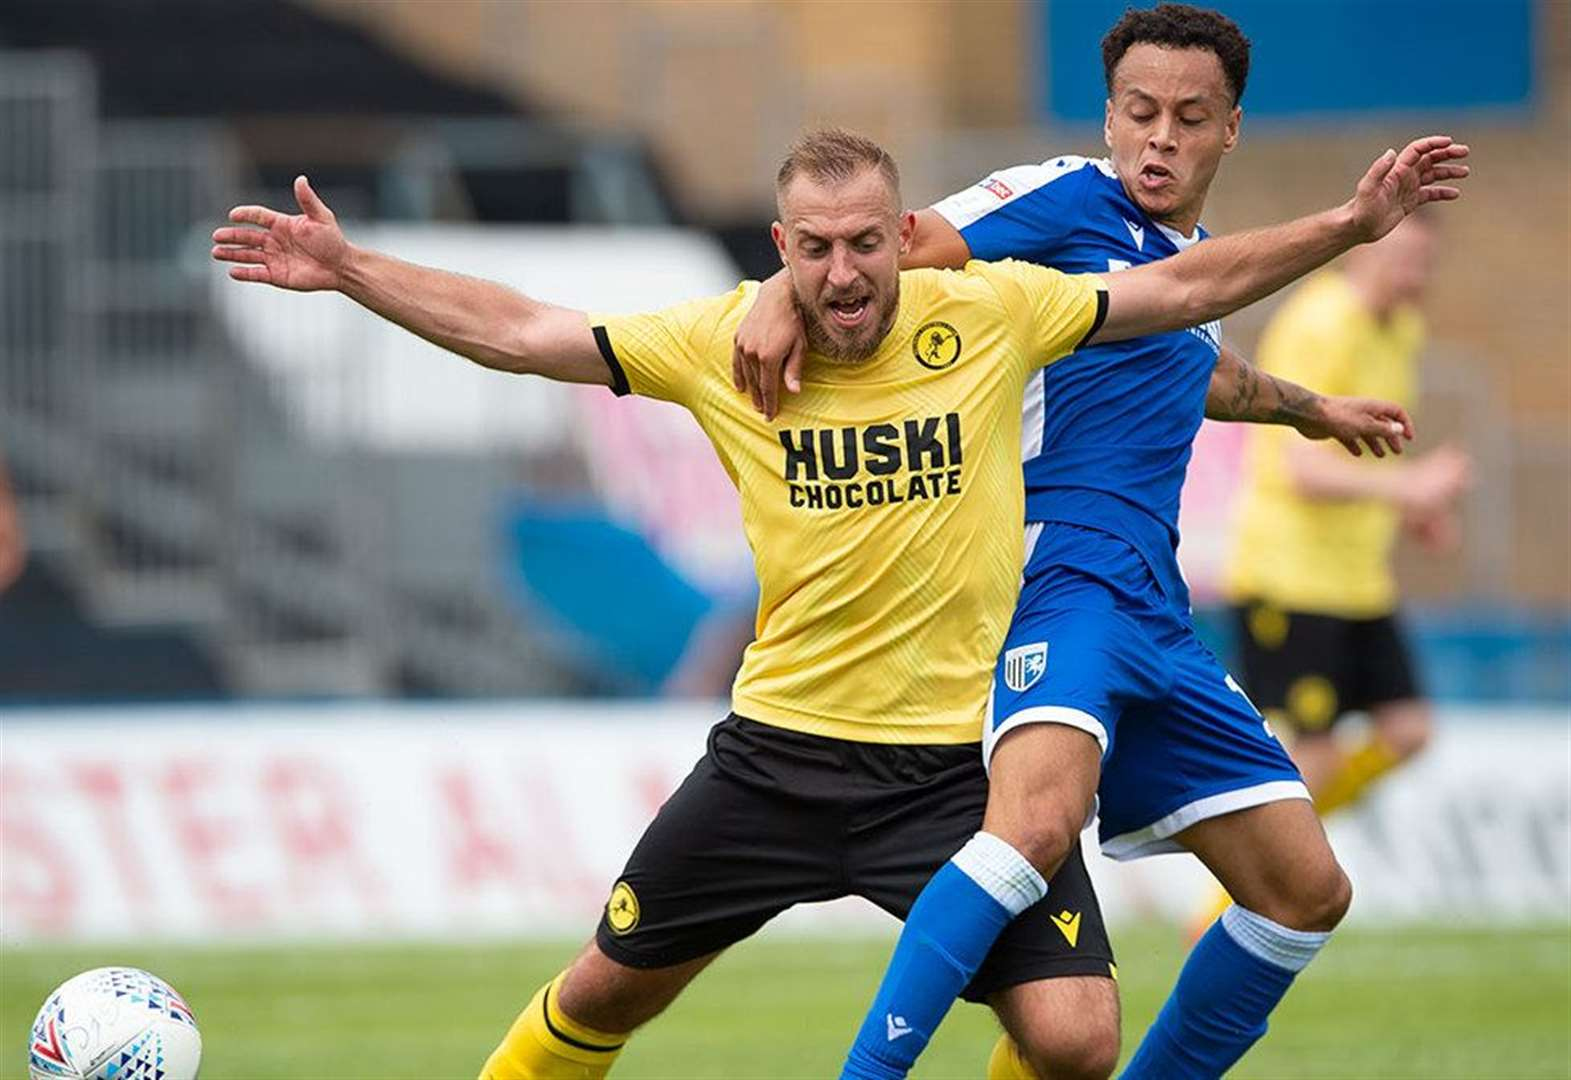 Report: Busy Gills edged out